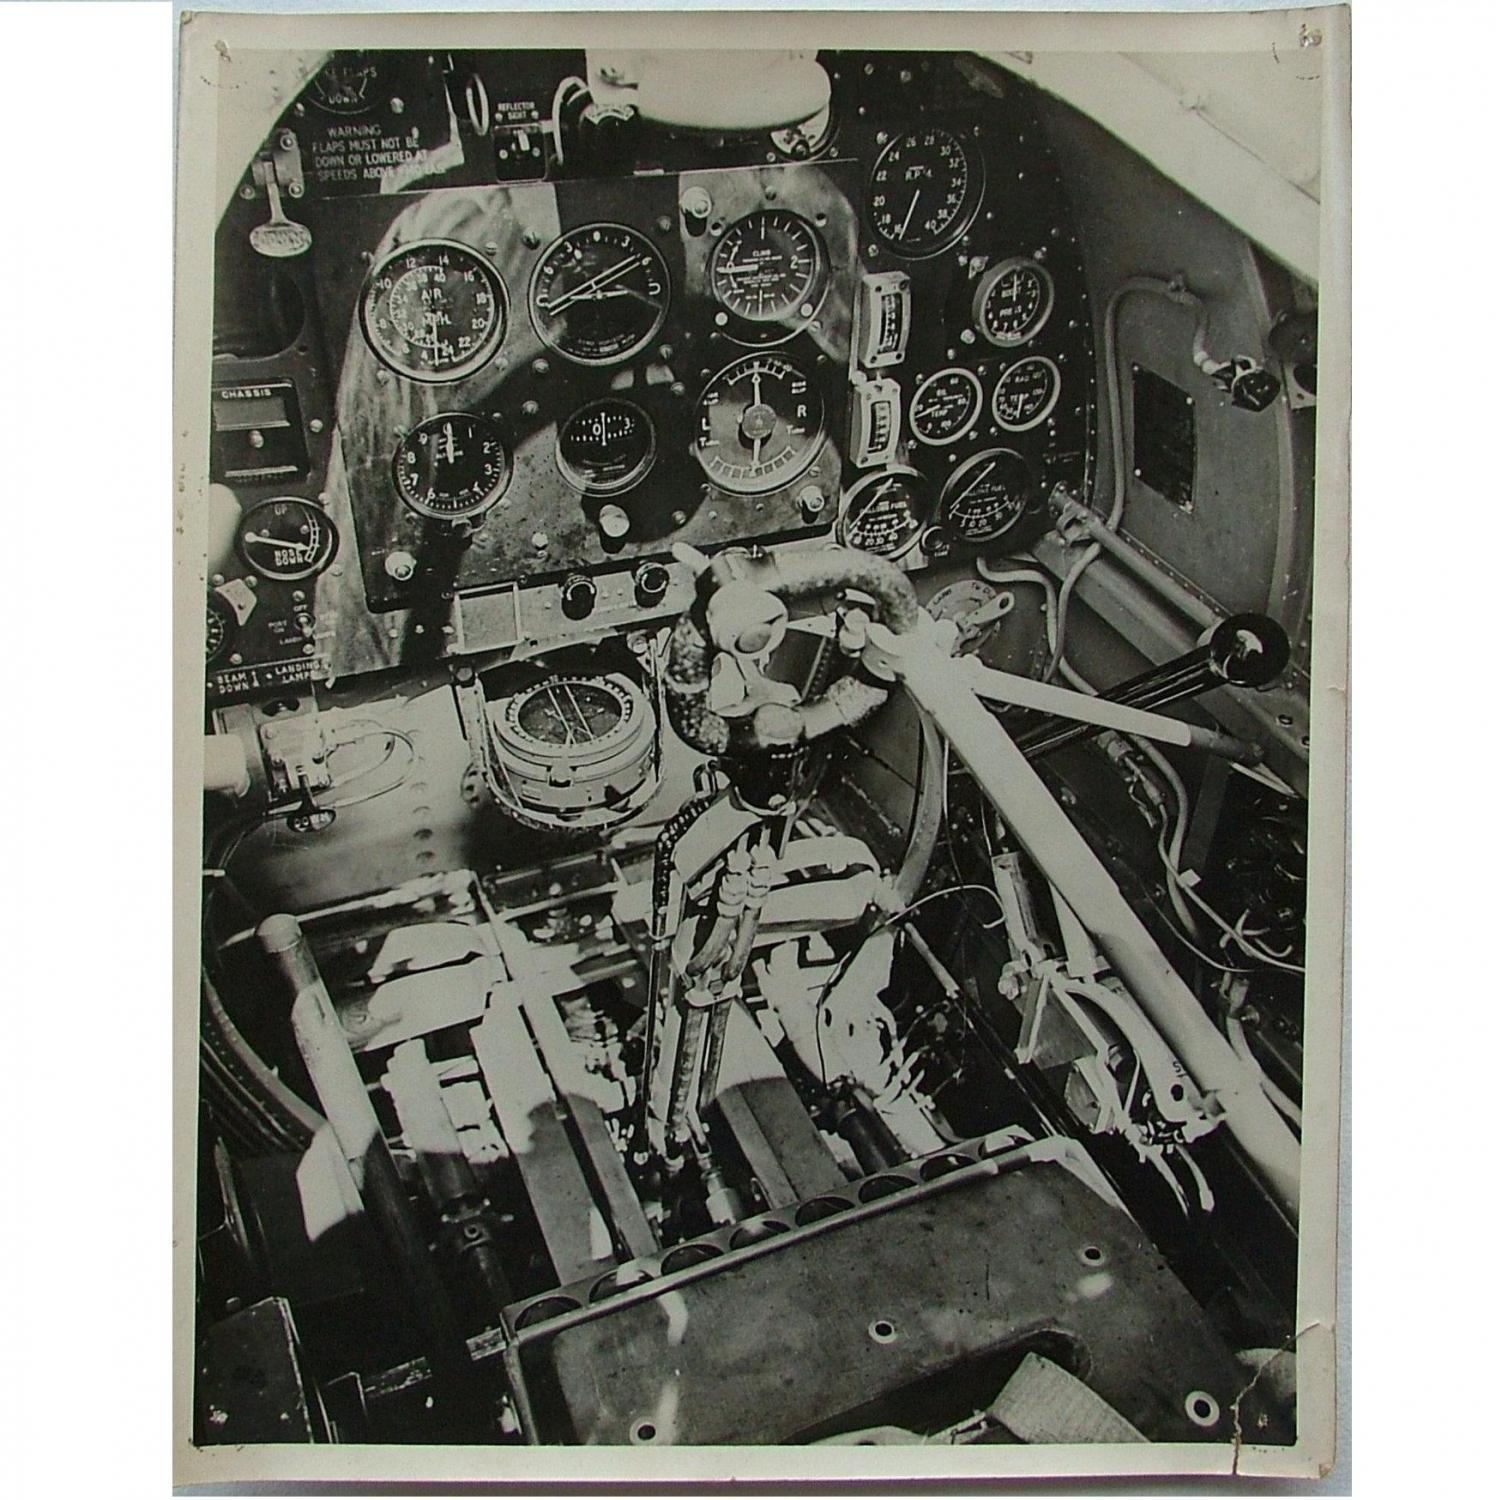 Press Photo - Spitfire Cockpit